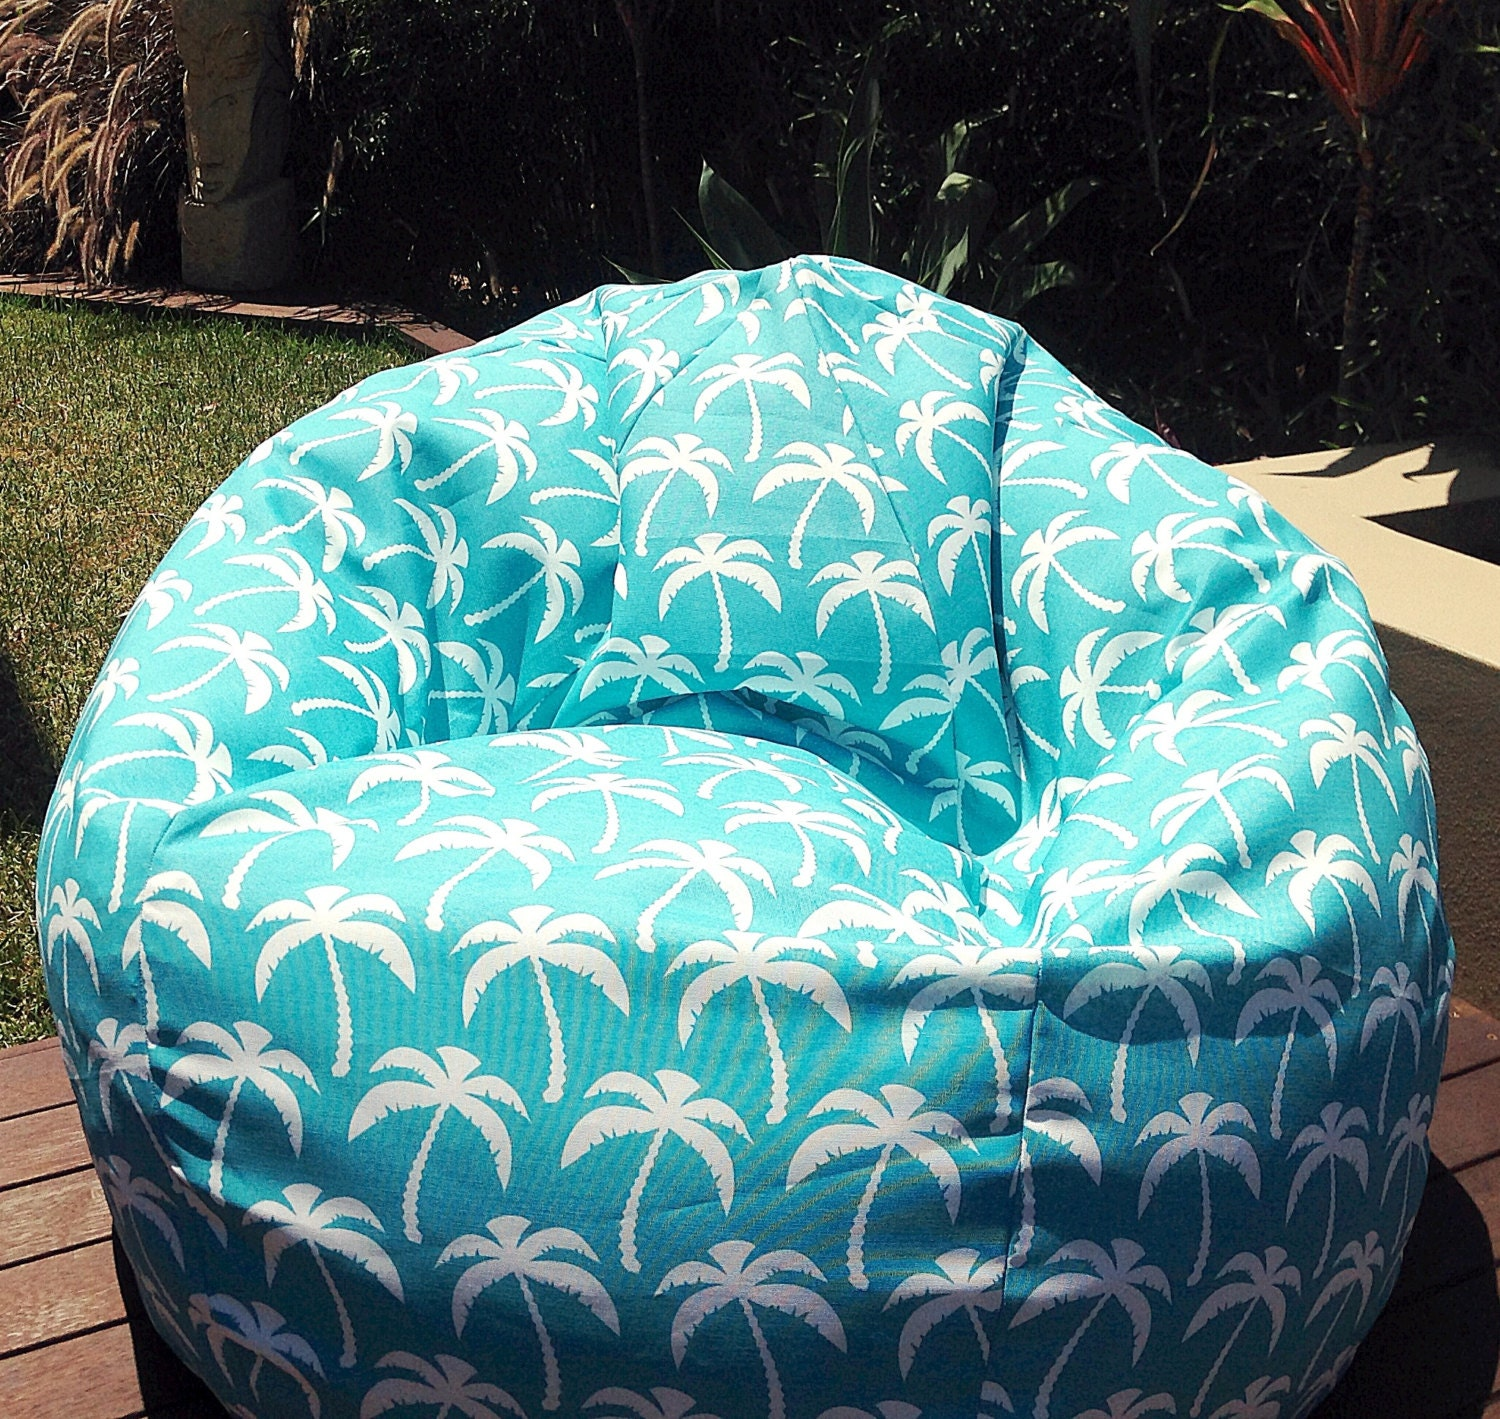 Outdoor Bean Bag Palm Springs Turquoise Cool Funky Retro